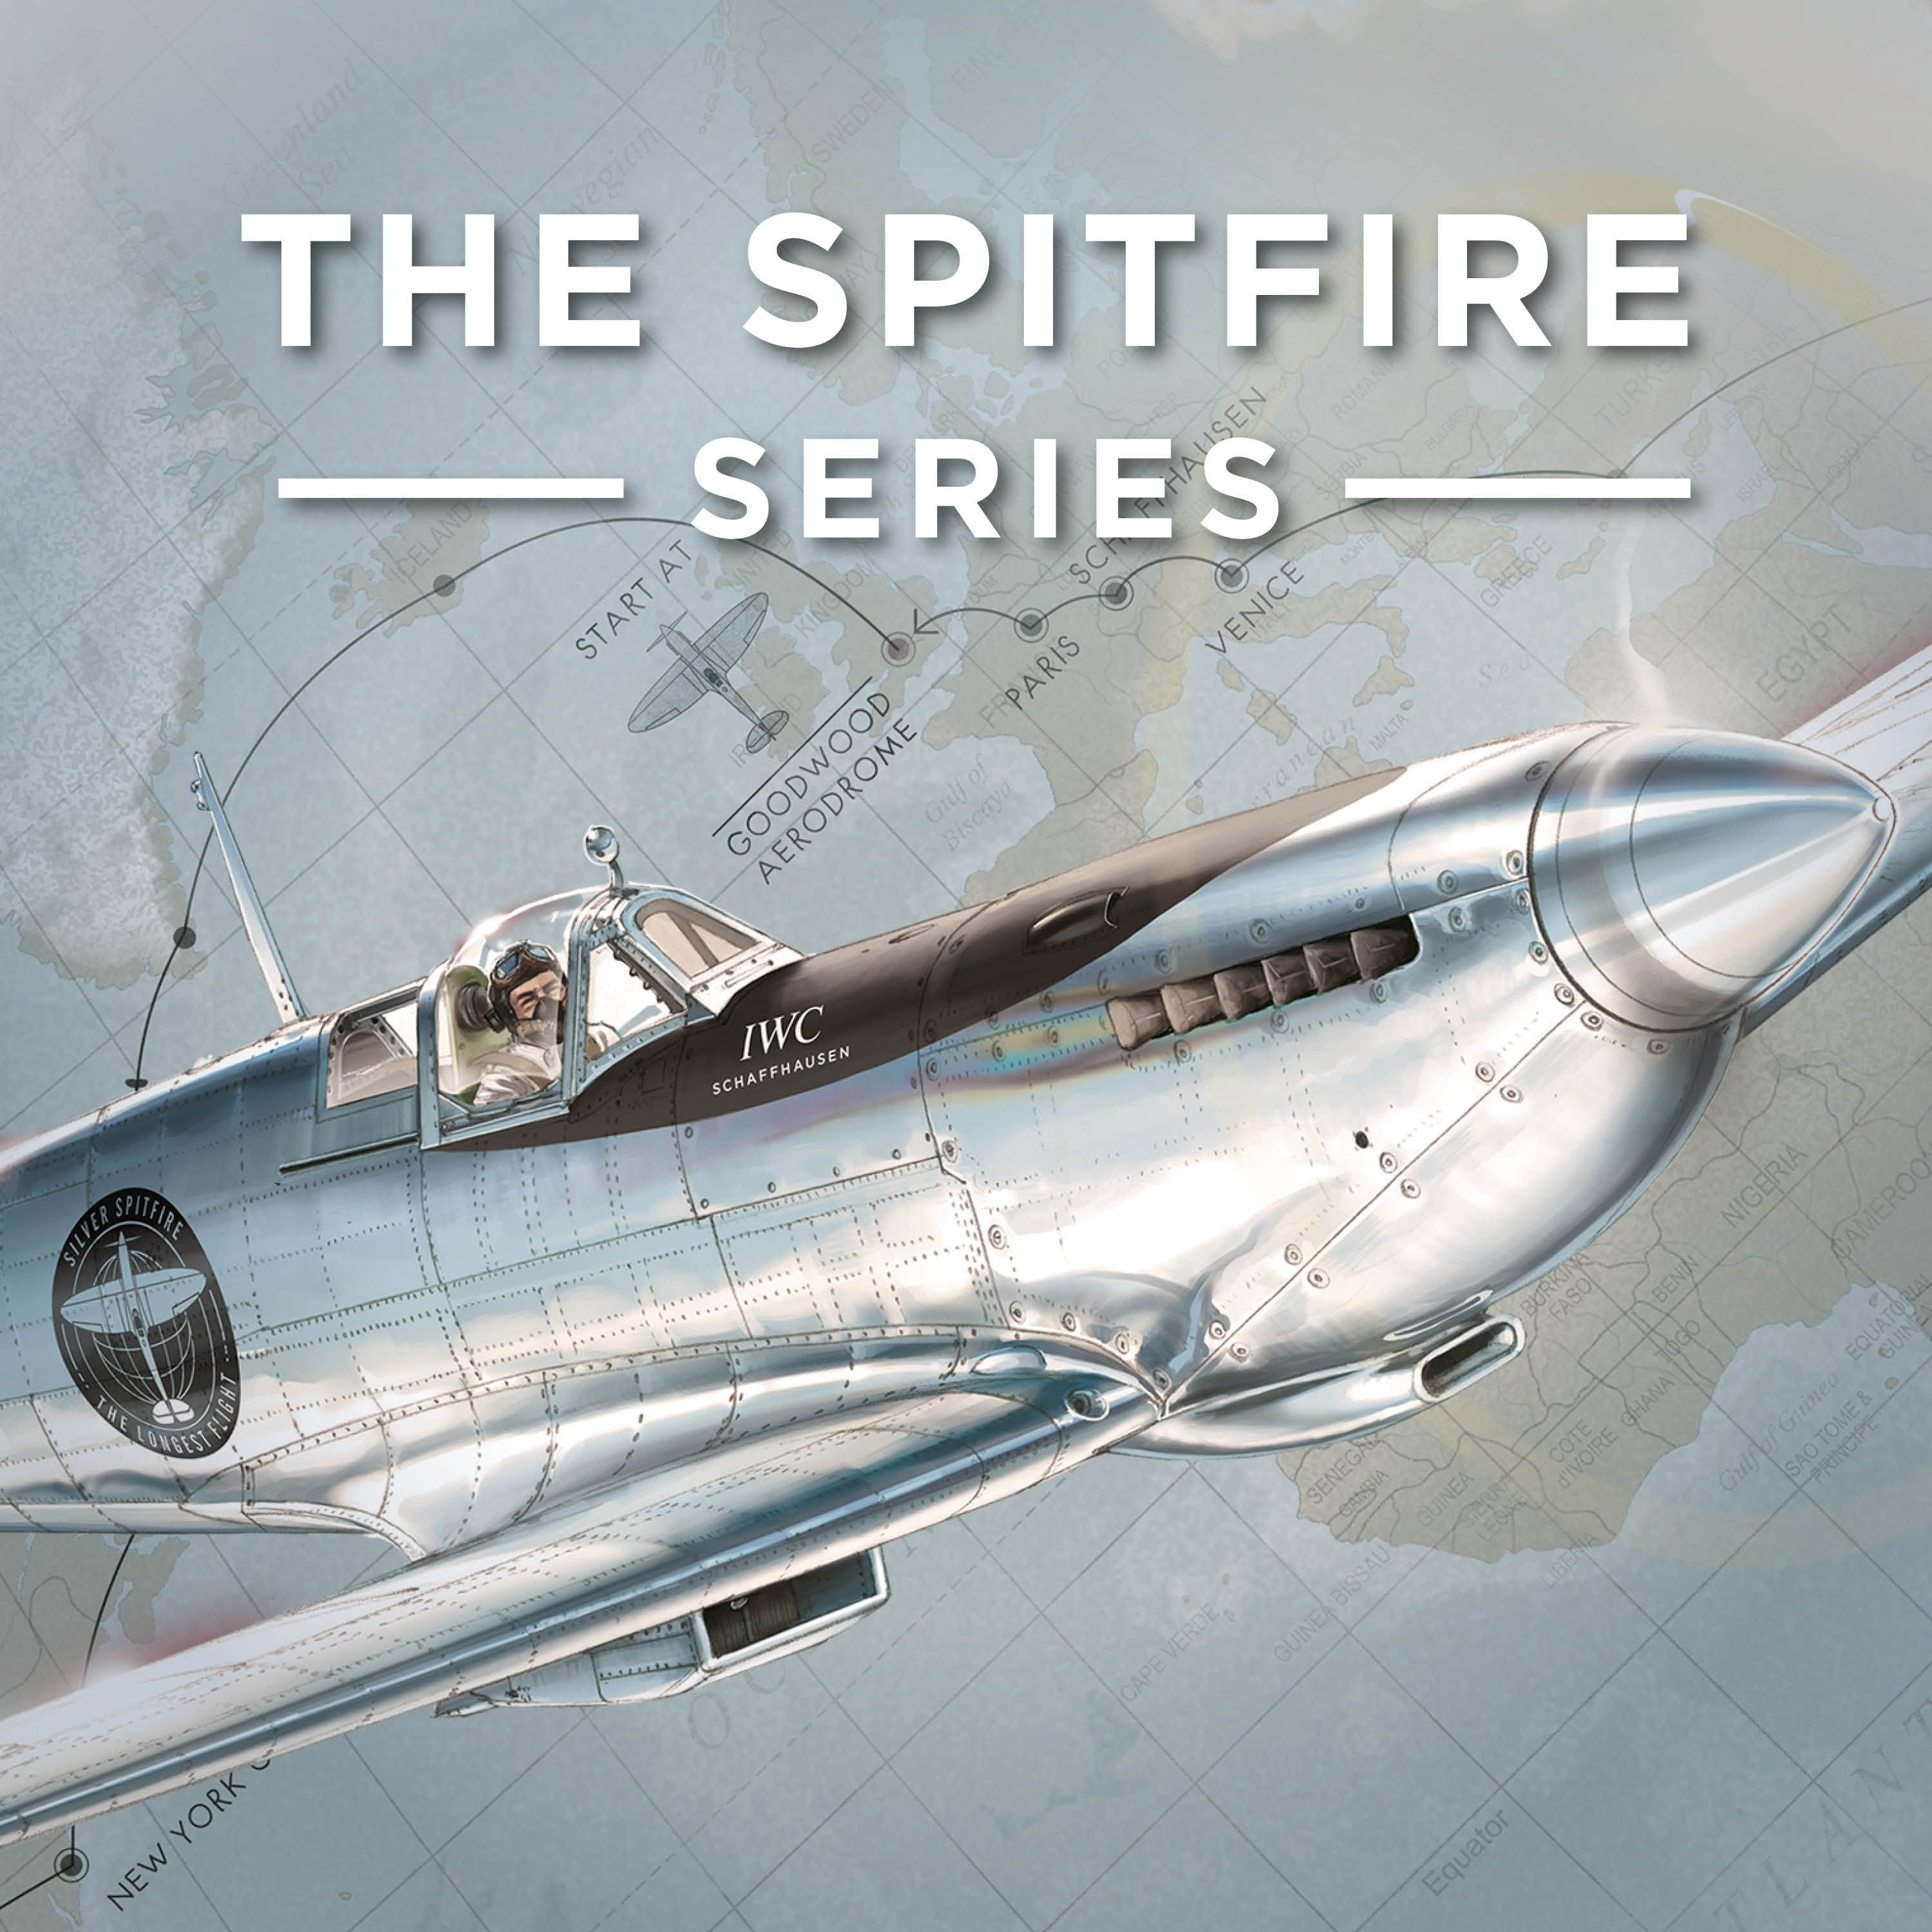 The Spitfire Series